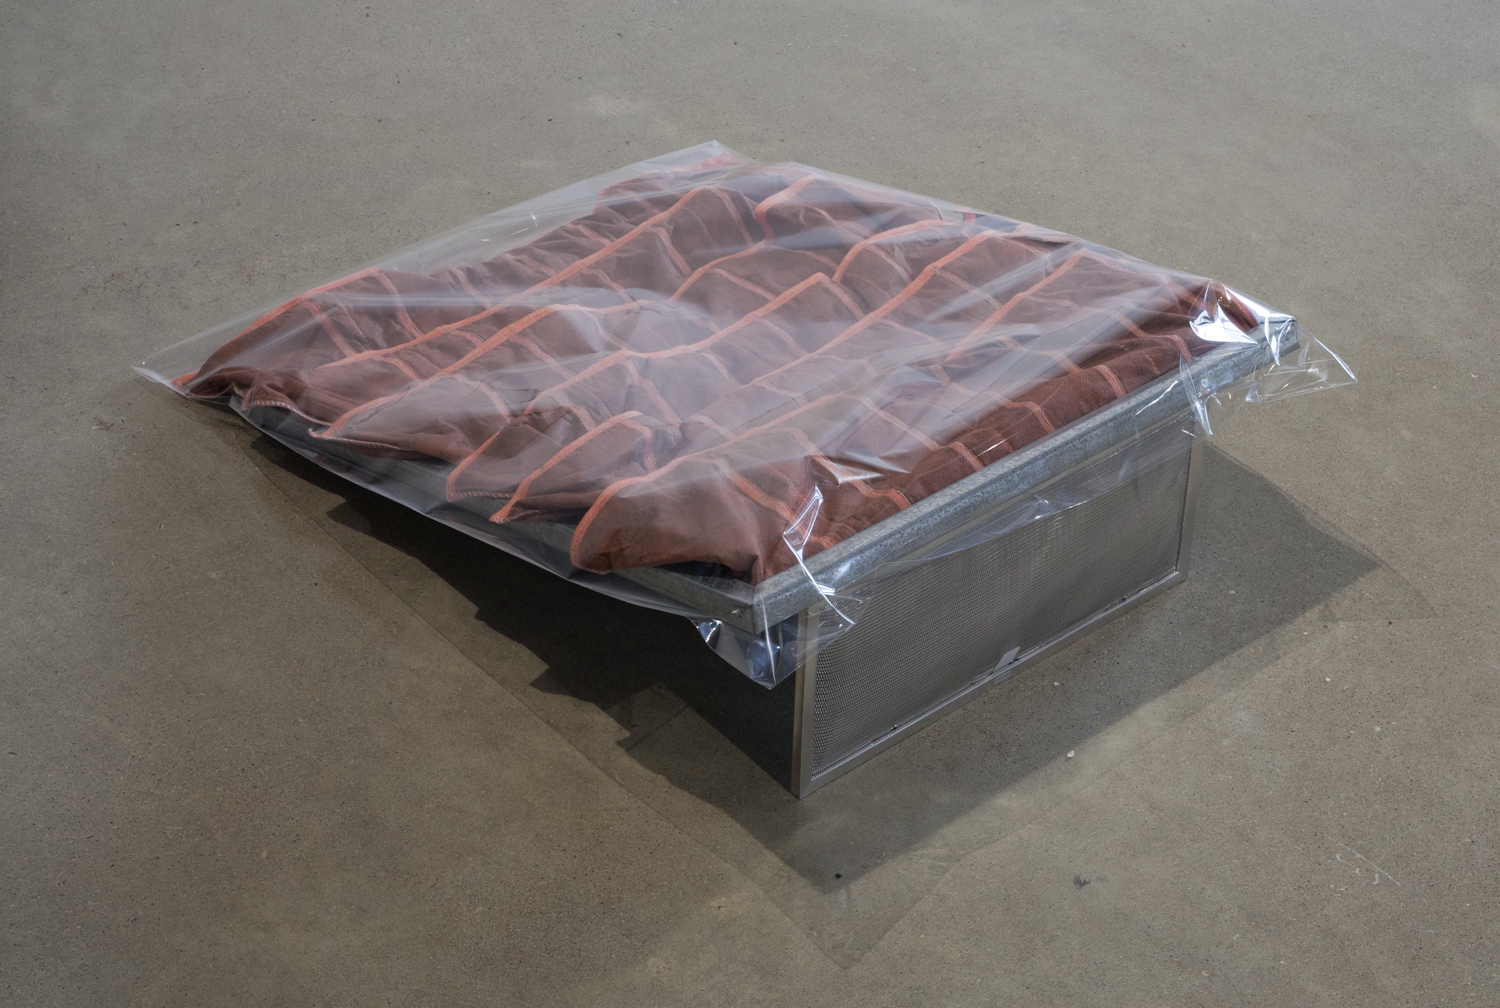 Clear Indications of Deoranging  , 2014. Industrial pocket filter, cellophane bag, microwave filter